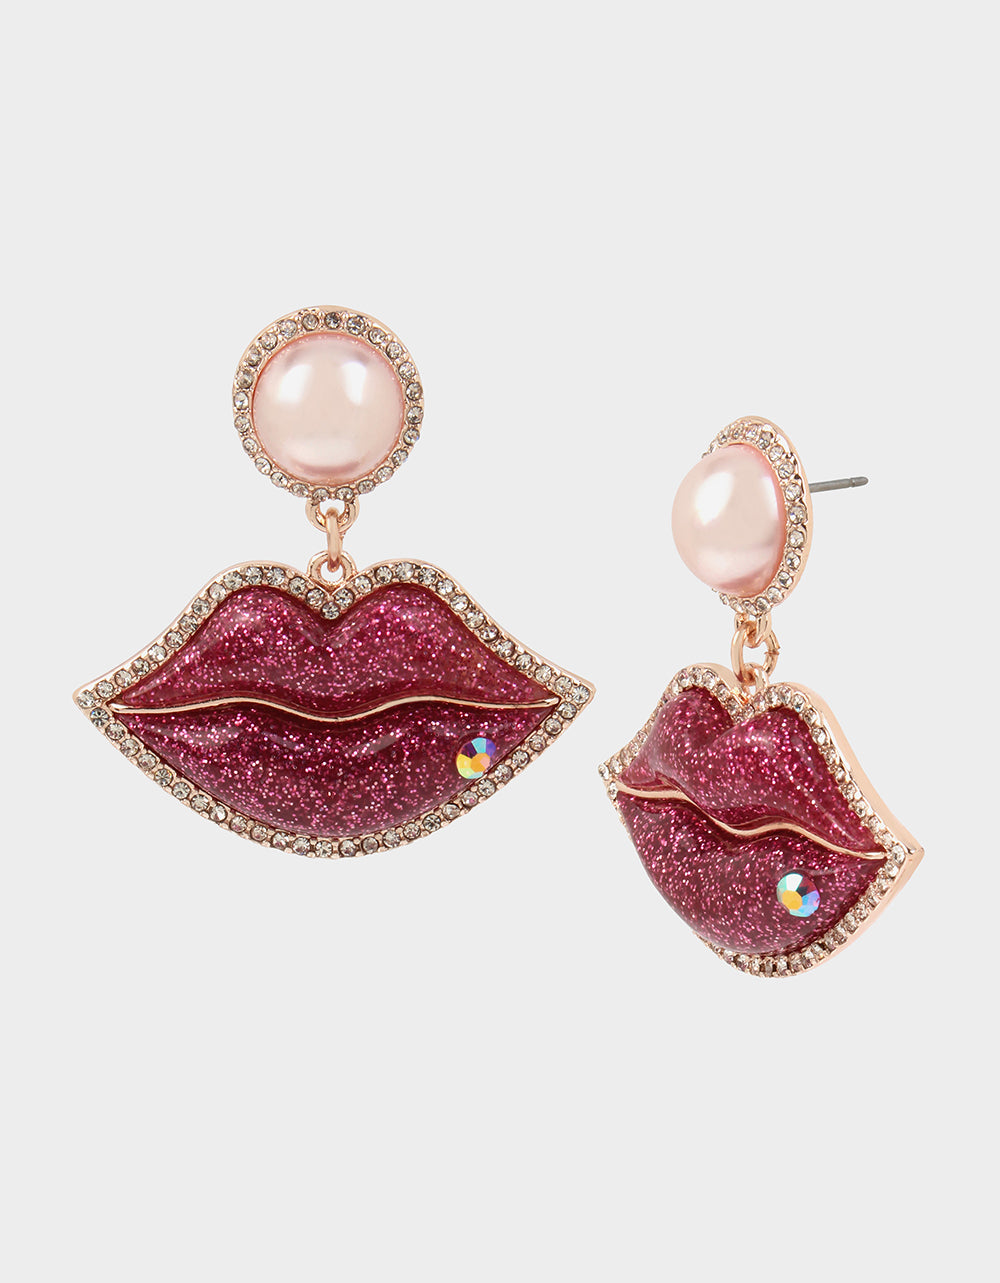 XOX BETSEY BIG KISS EARRINGS PINK - JEWELRY - Betsey Johnson